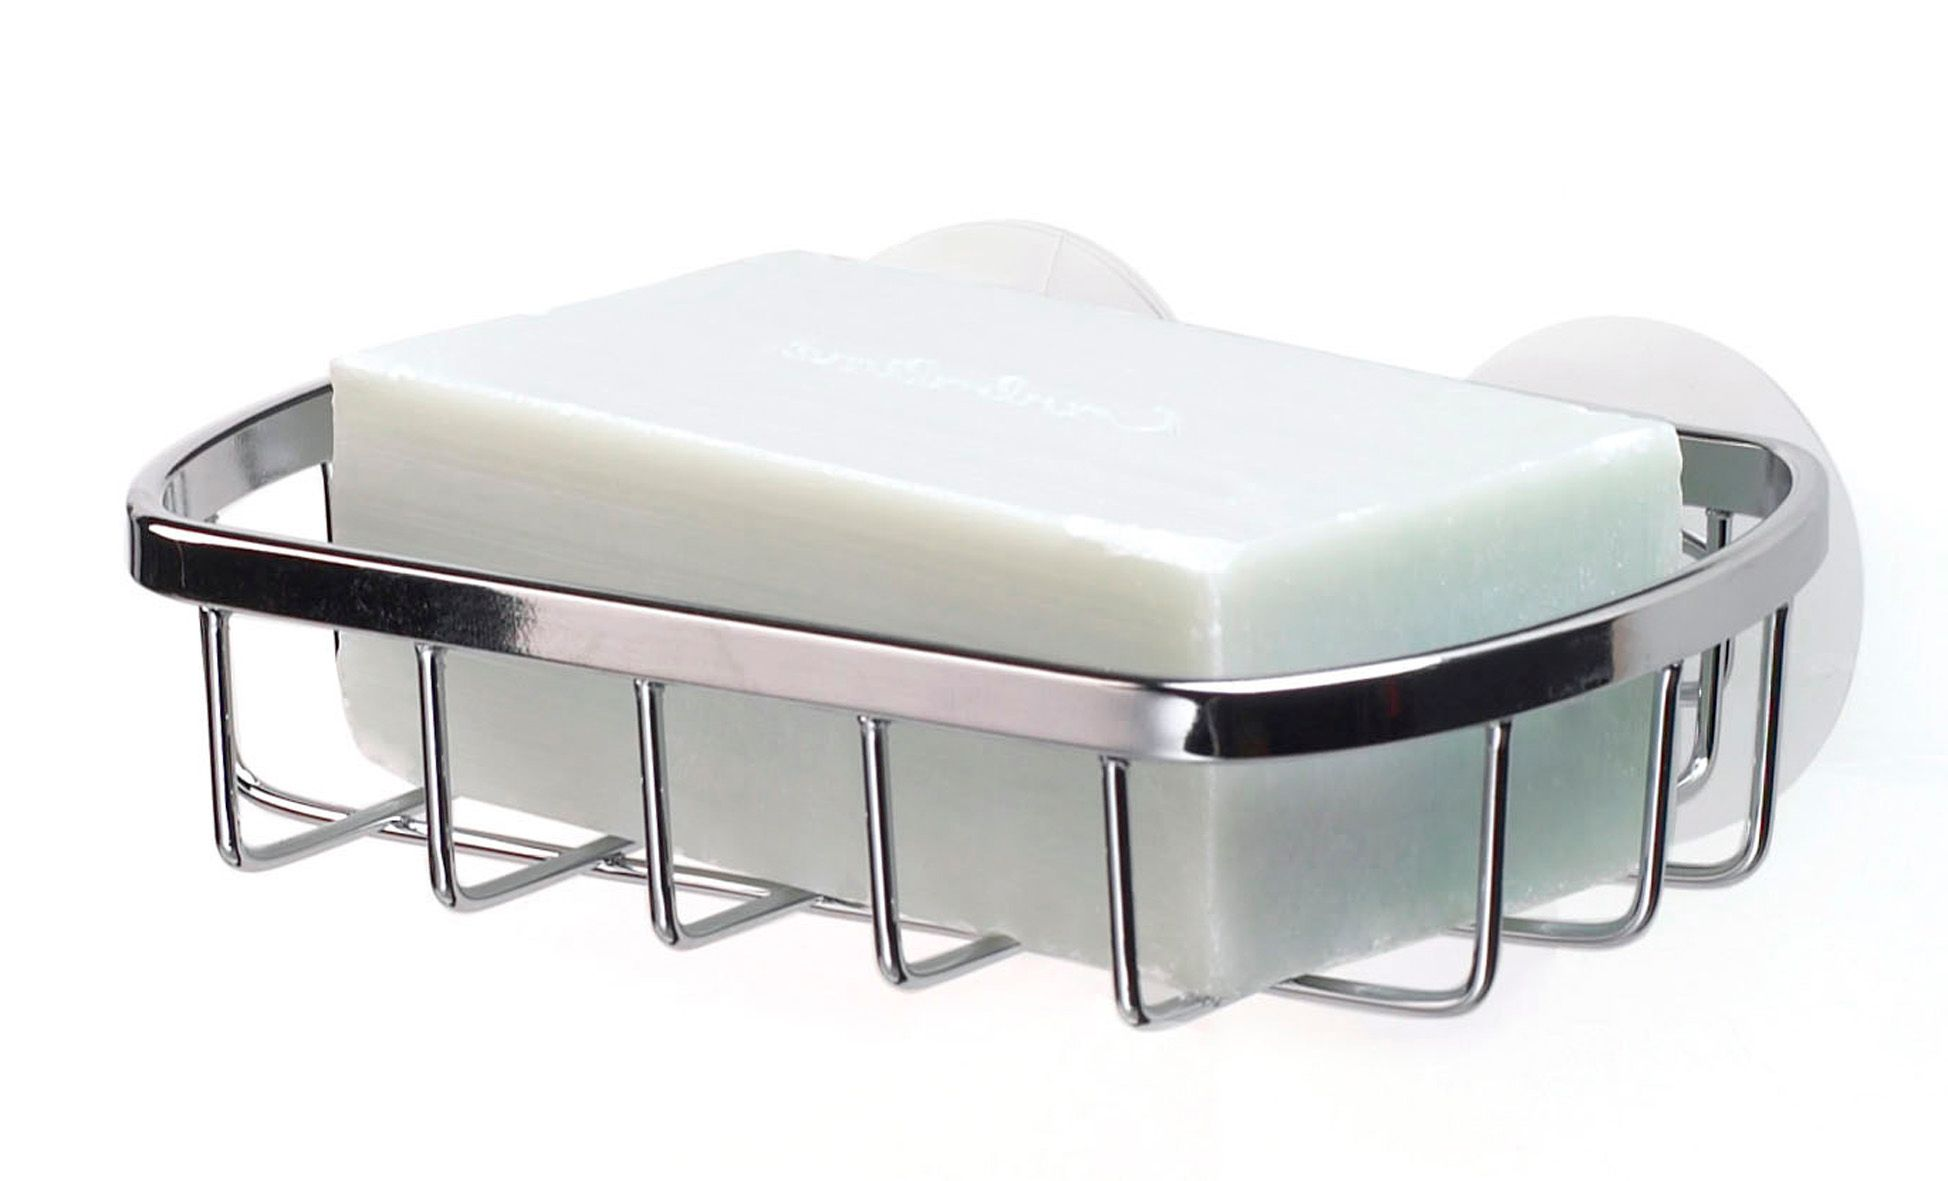 Stainless steel suction soap dish